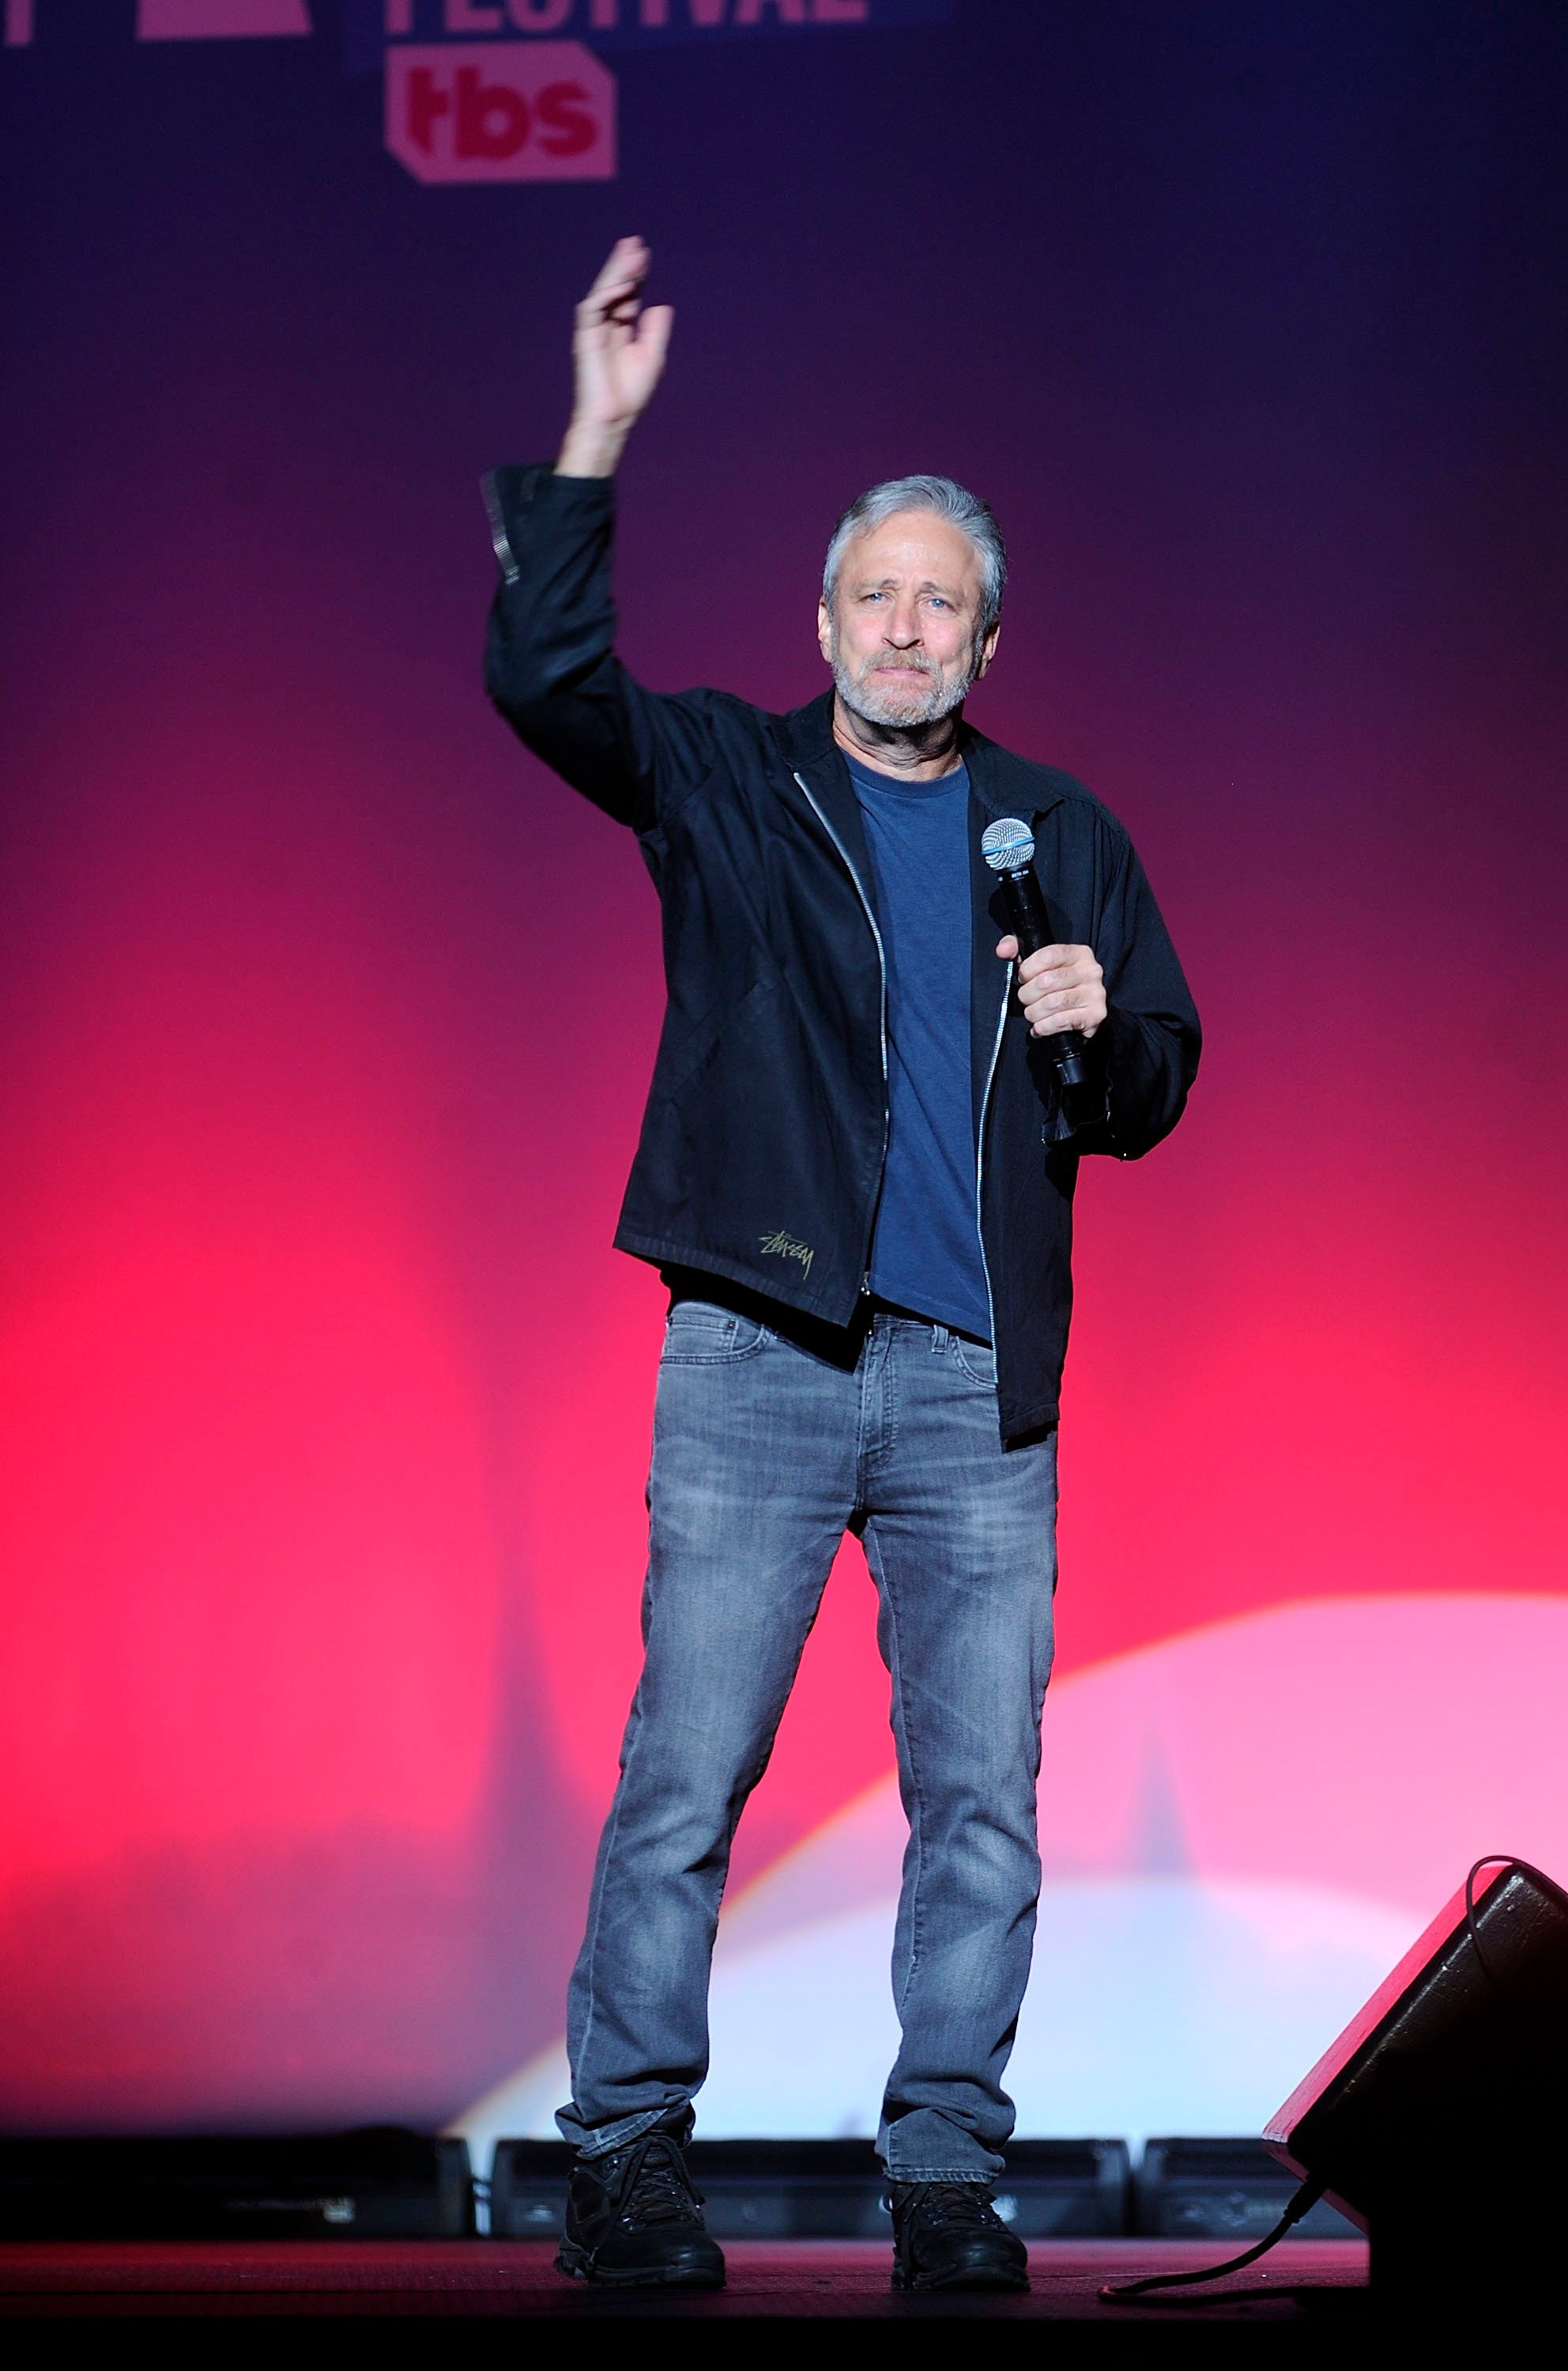 Jon Stewart attends the 12th annual Stand Up For Heroes benefit concert at the Hulu Theater at Madison Square Garden on Monday, Nov. 5, 2018, in New York. (Photo by Brad Barket/Invision/AP)